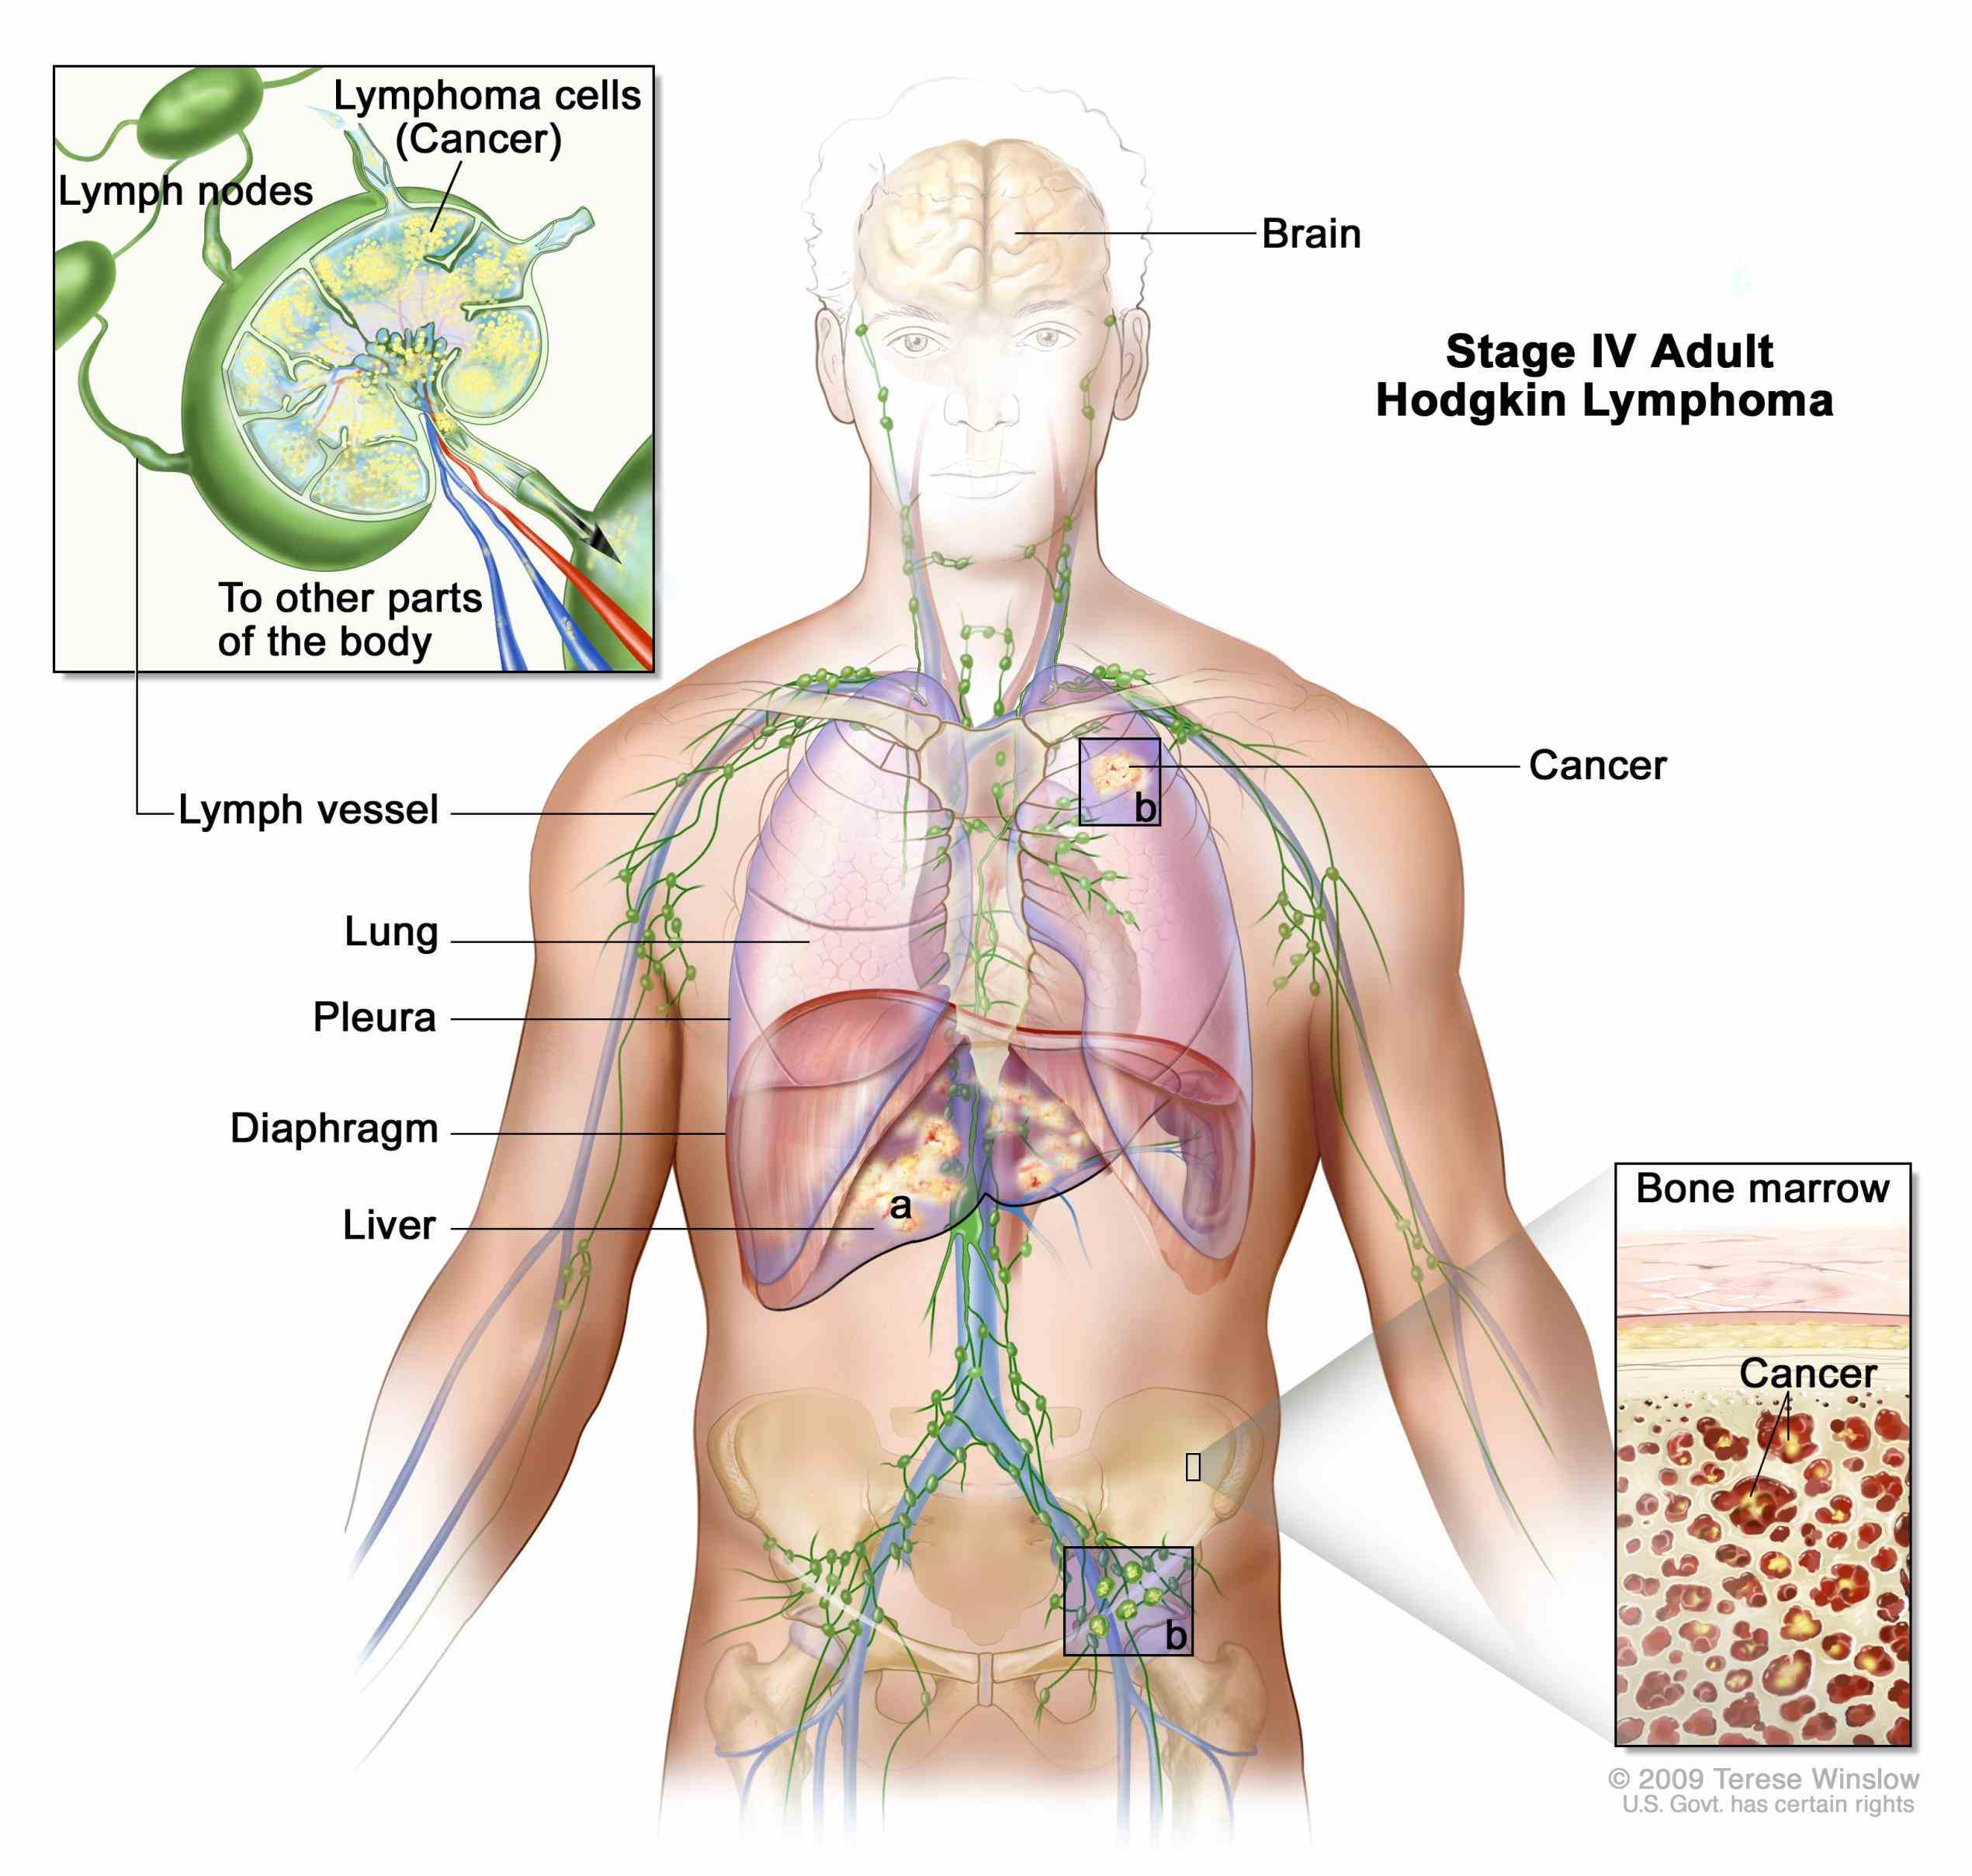 stage iv depends a if Stage 4 Cancer Lung